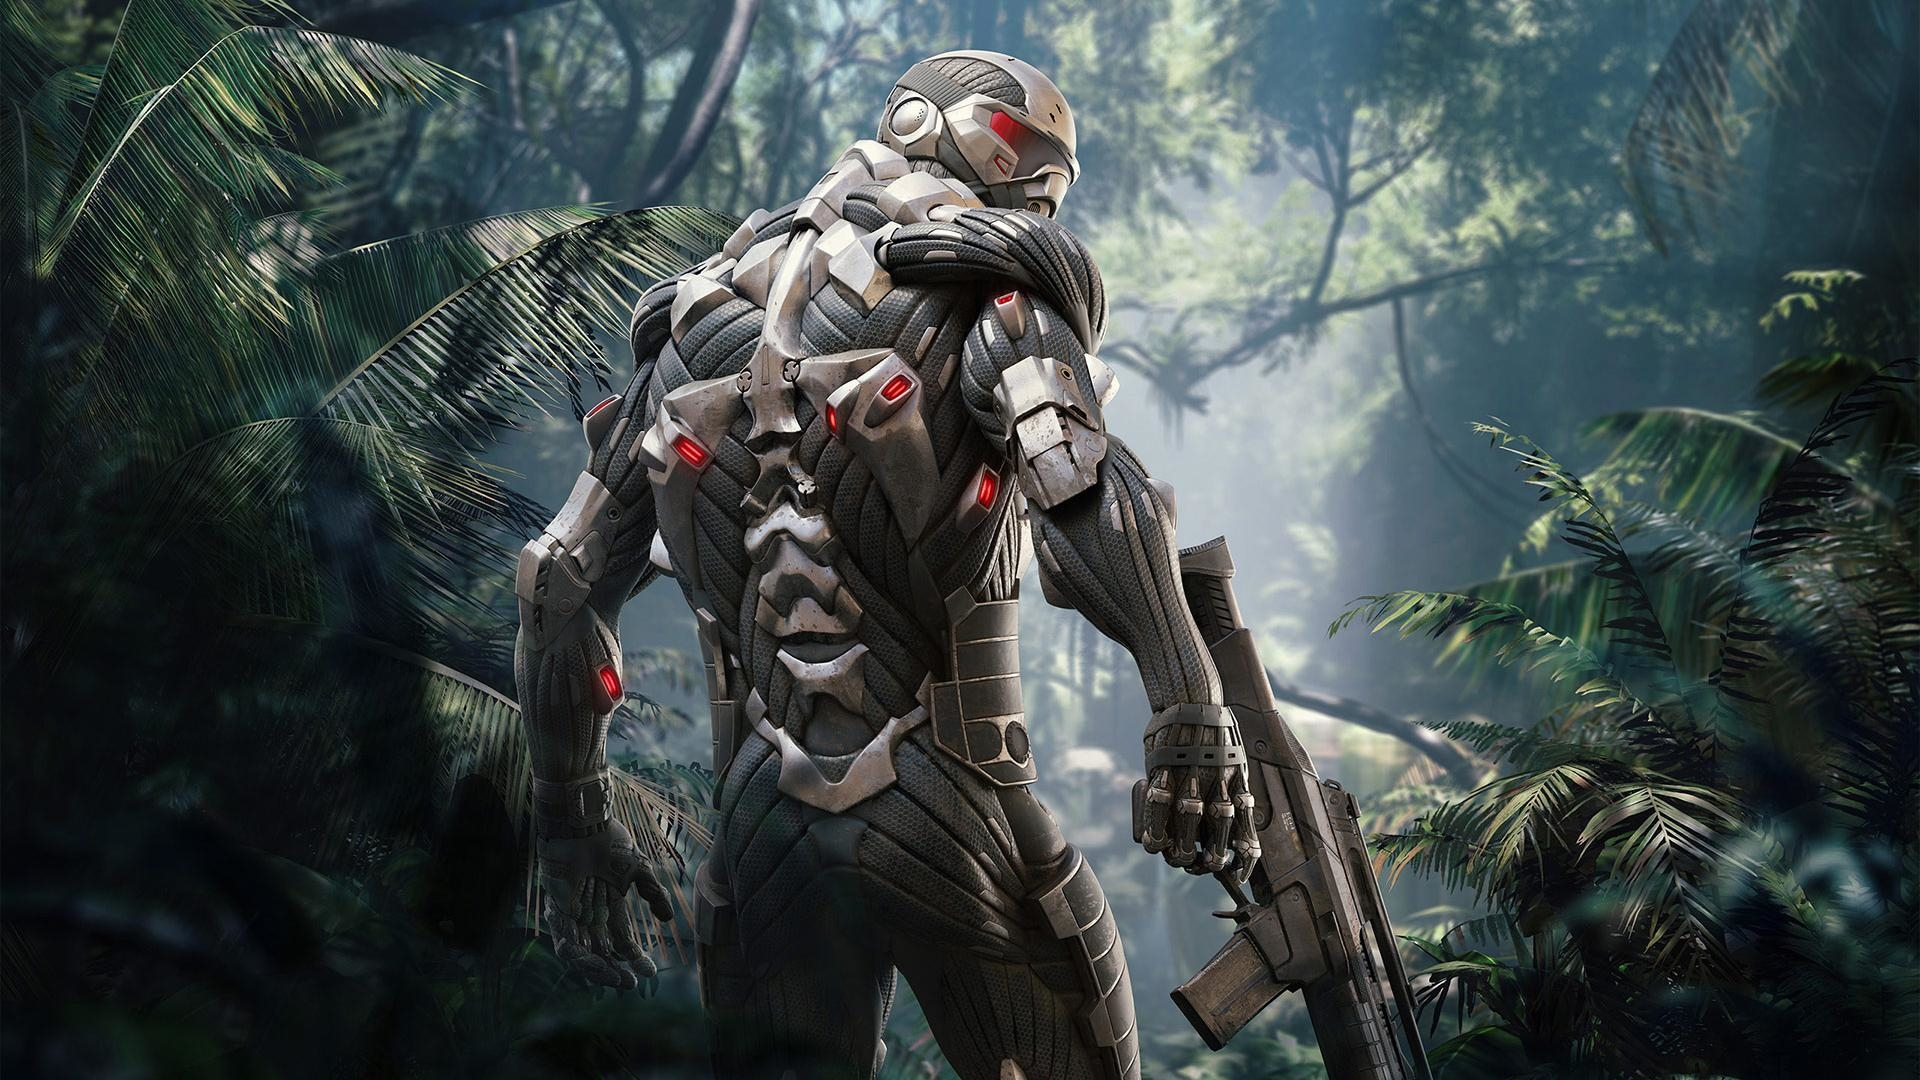 Crysis Remastered Game Wallpaper Hd Games 4k Wallpapers Images Photos And Background